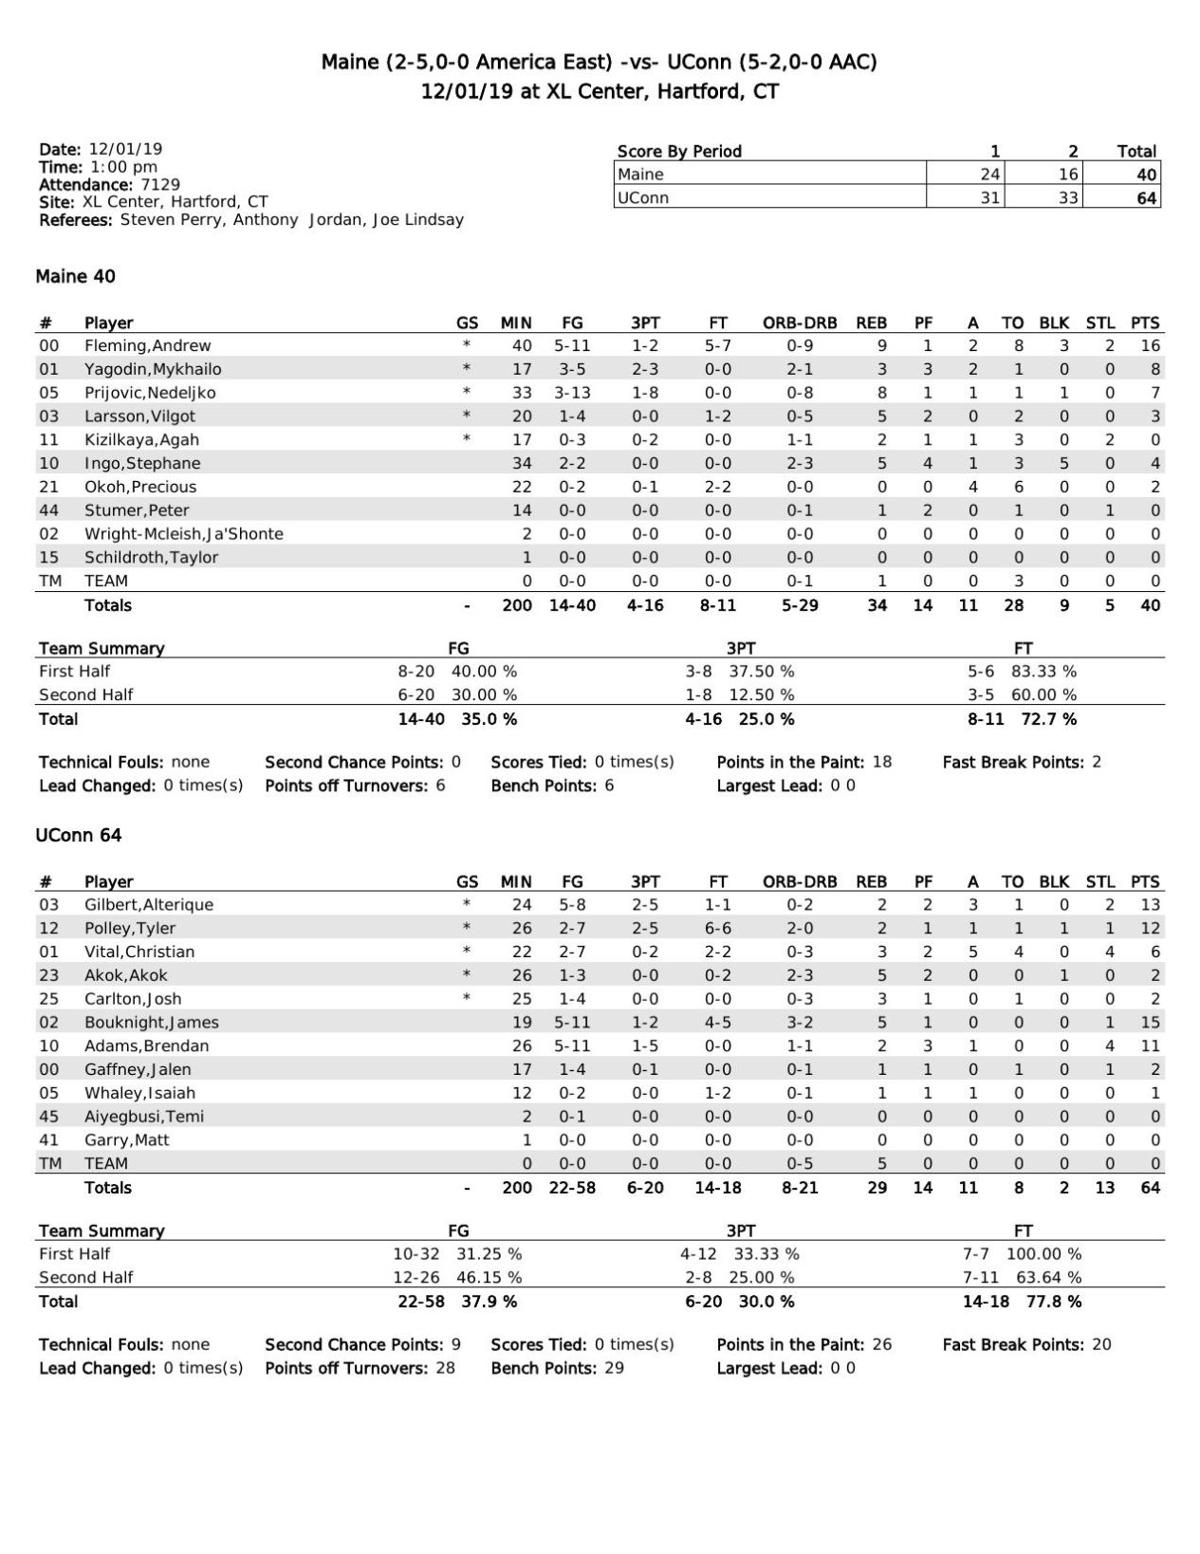 Box score: UConn 64, Maine 40